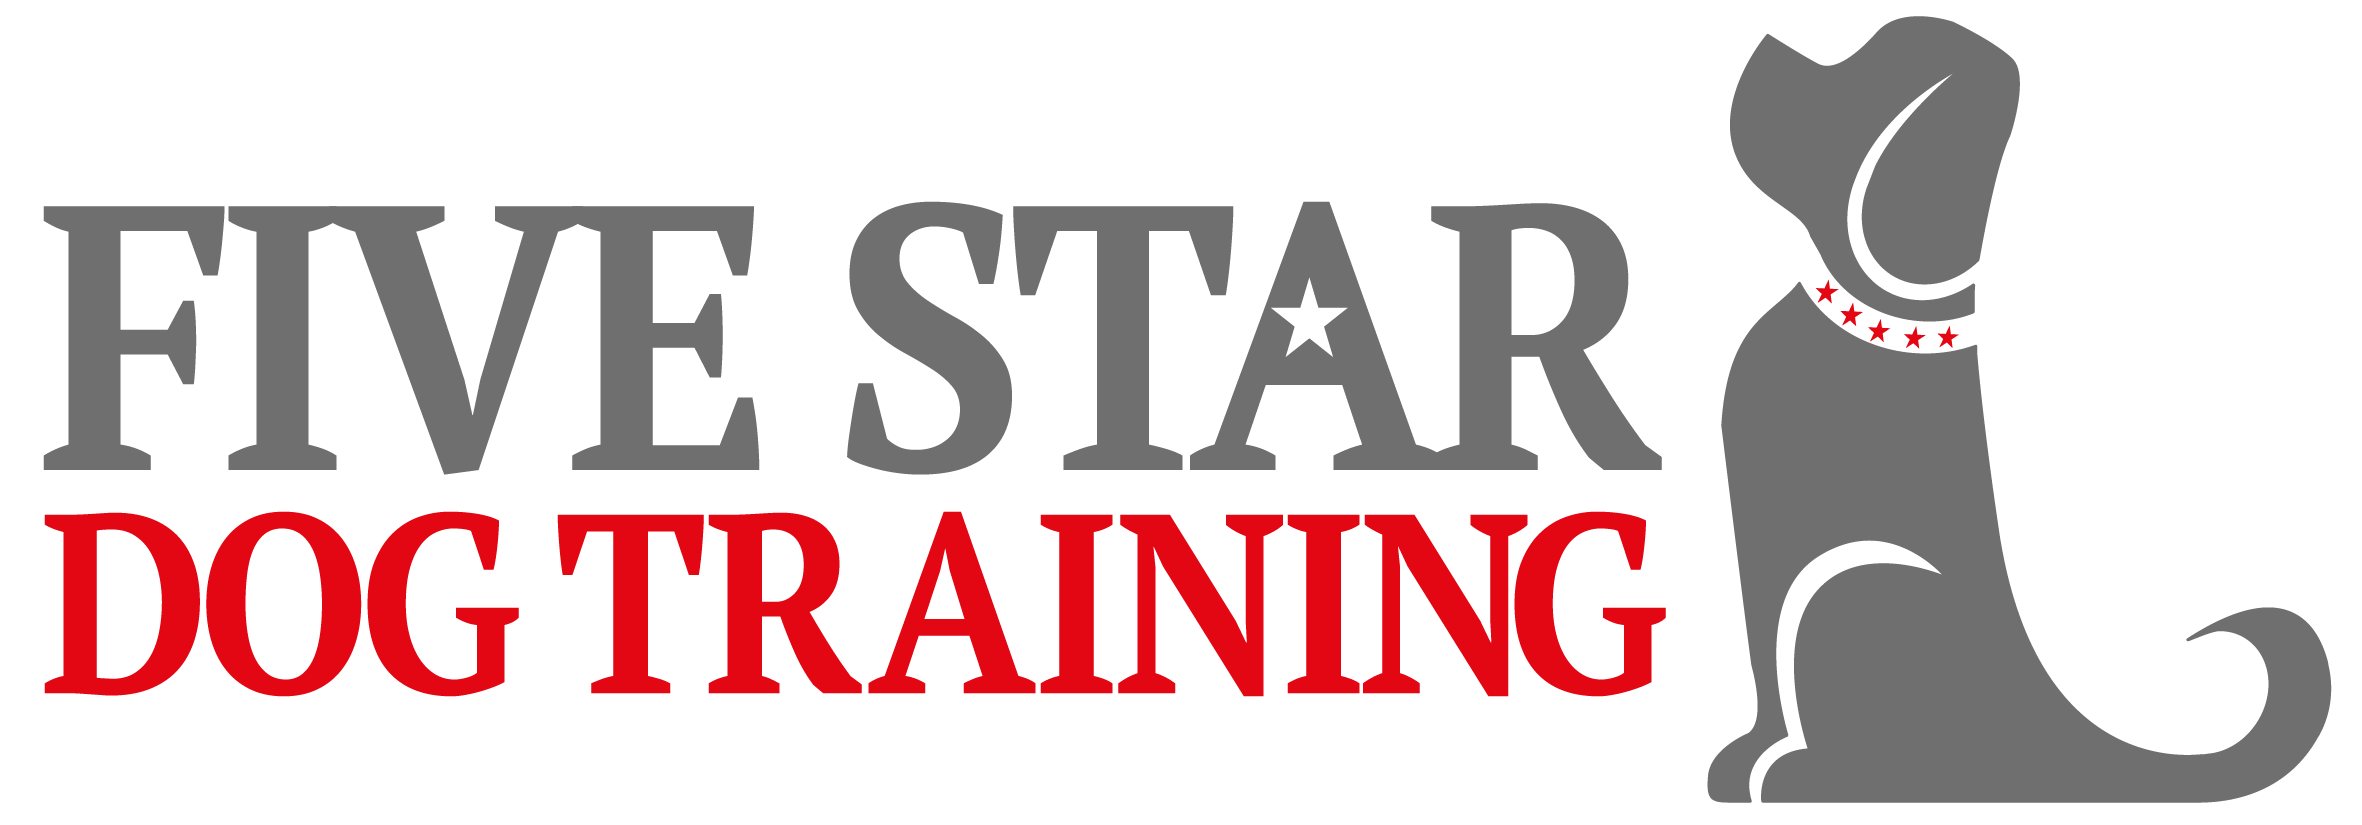 Five Star Dog Training